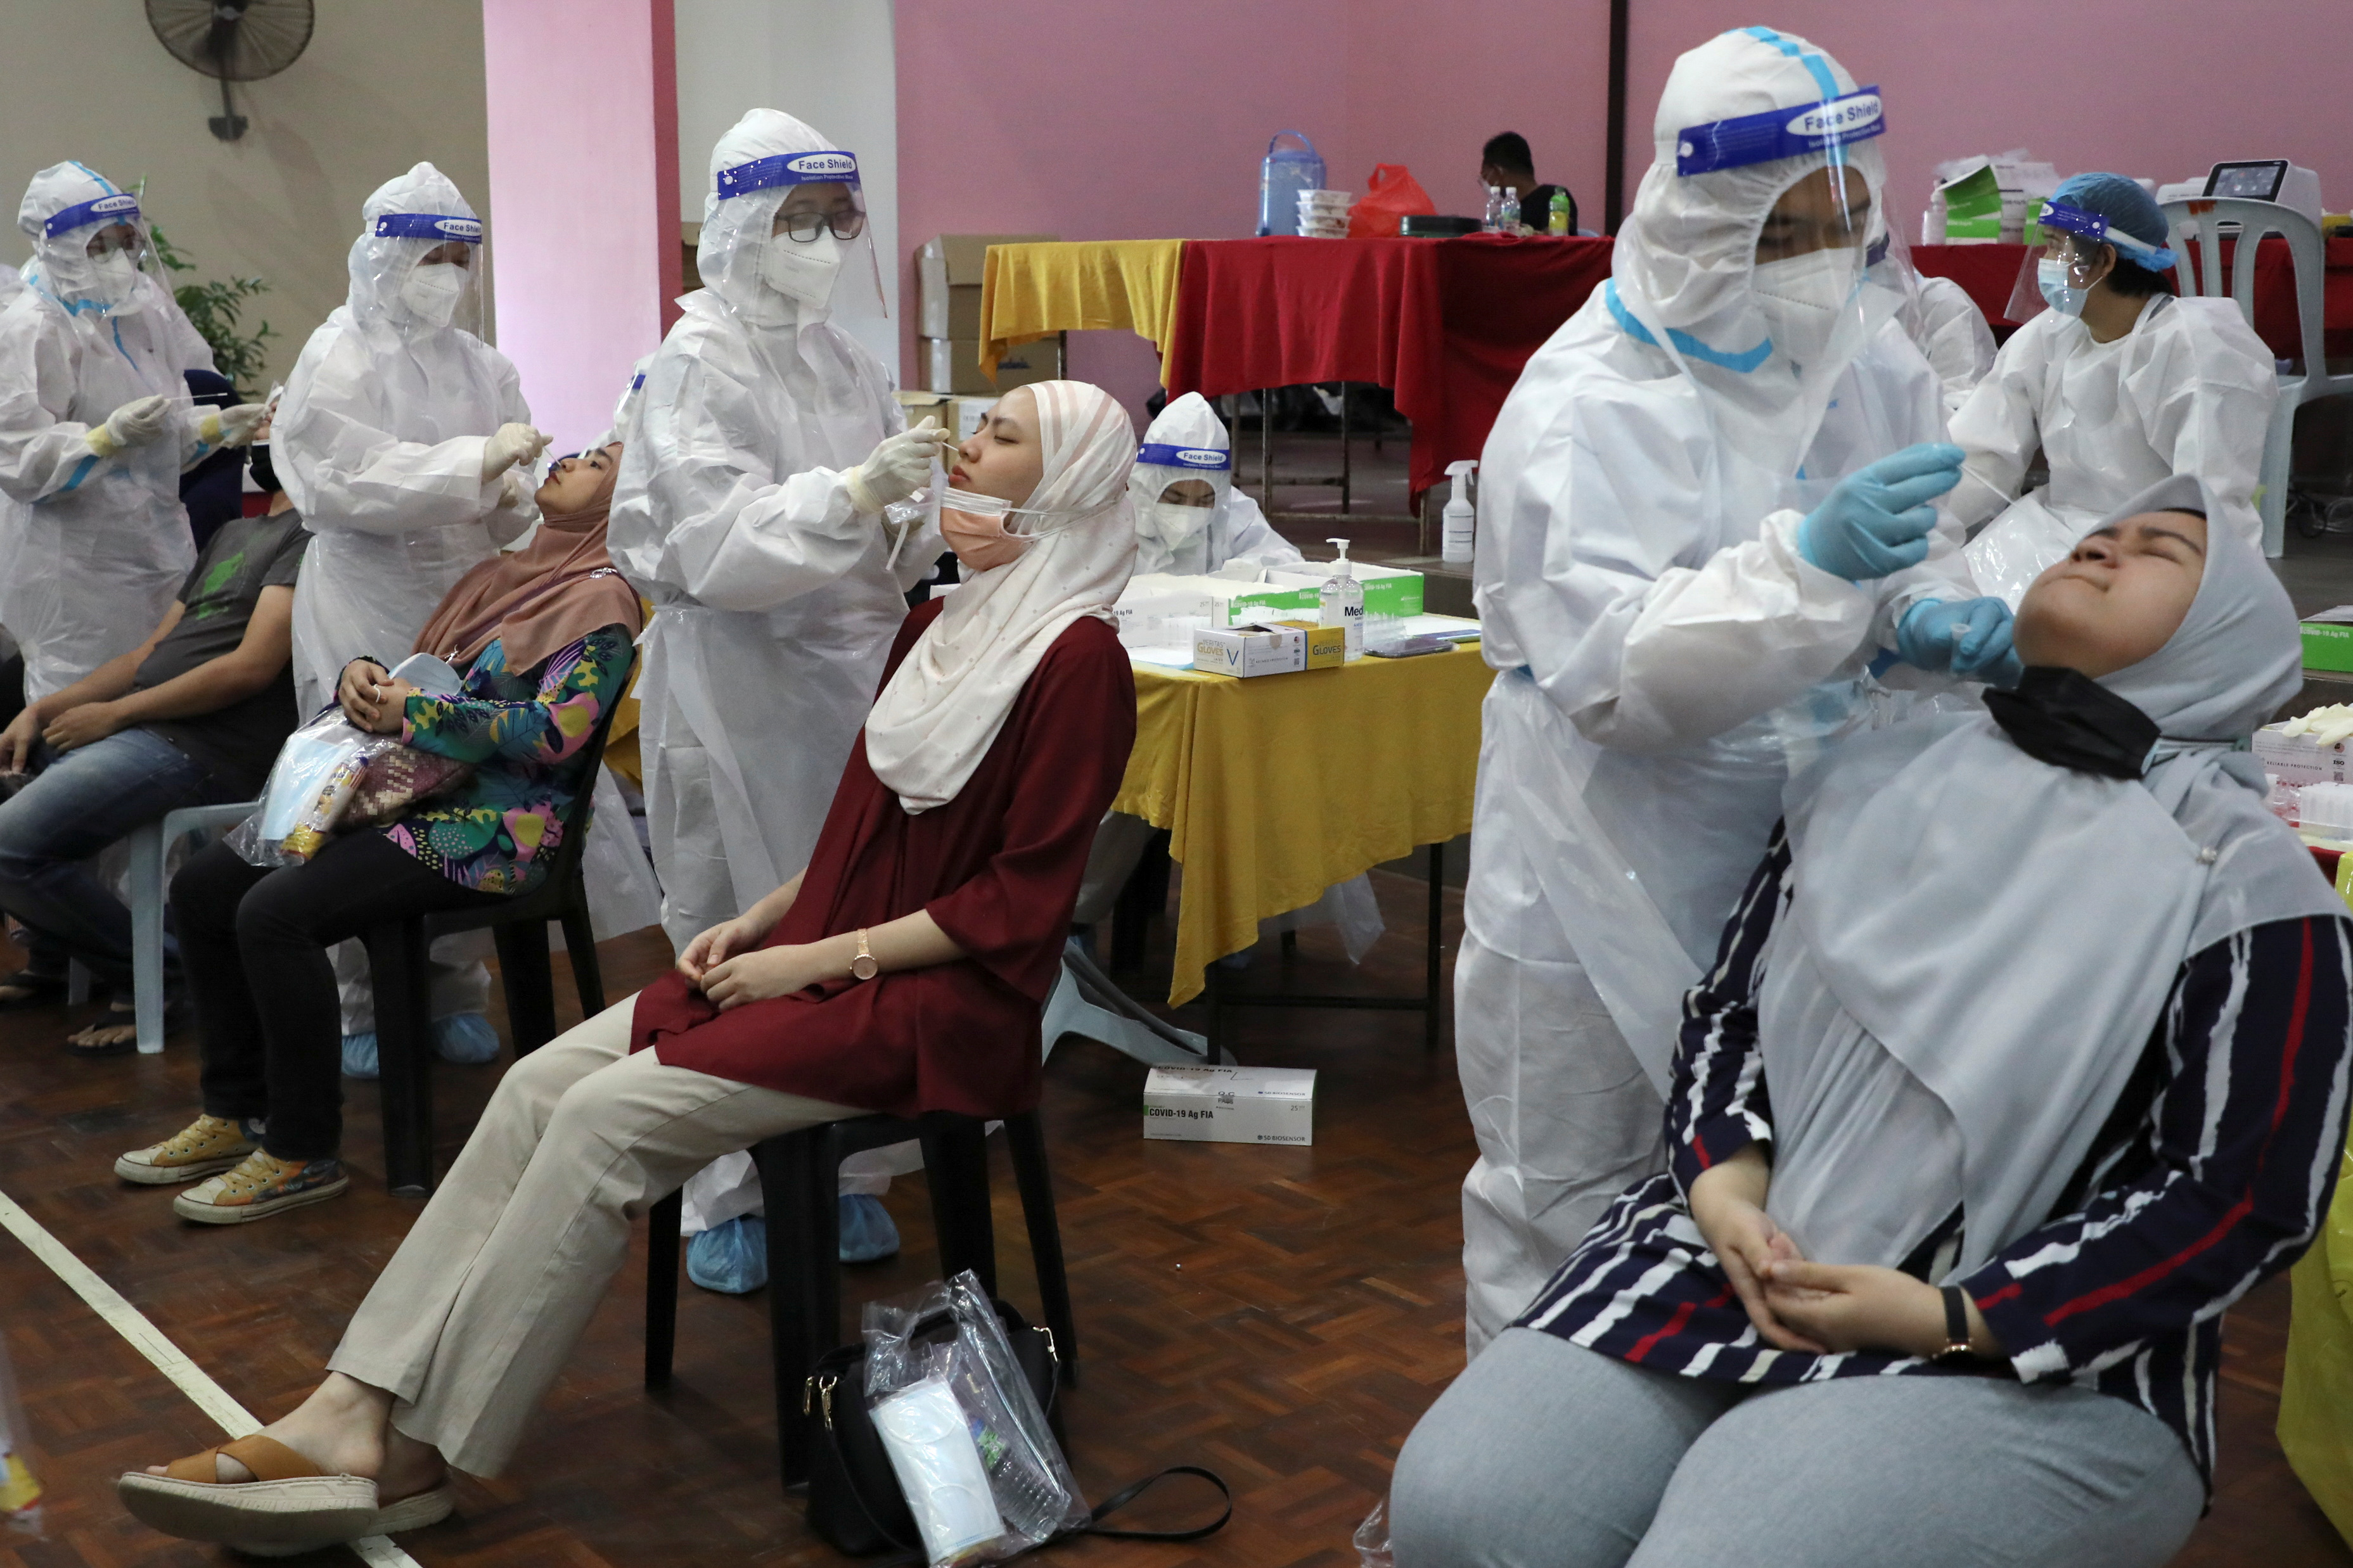 Medical workers collect swab samples from people to be tested for the coronavirus disease (COVID-19) in Cyberjaya, Malaysia, June 2, 2021. REUTERS/Lim Huey Teng